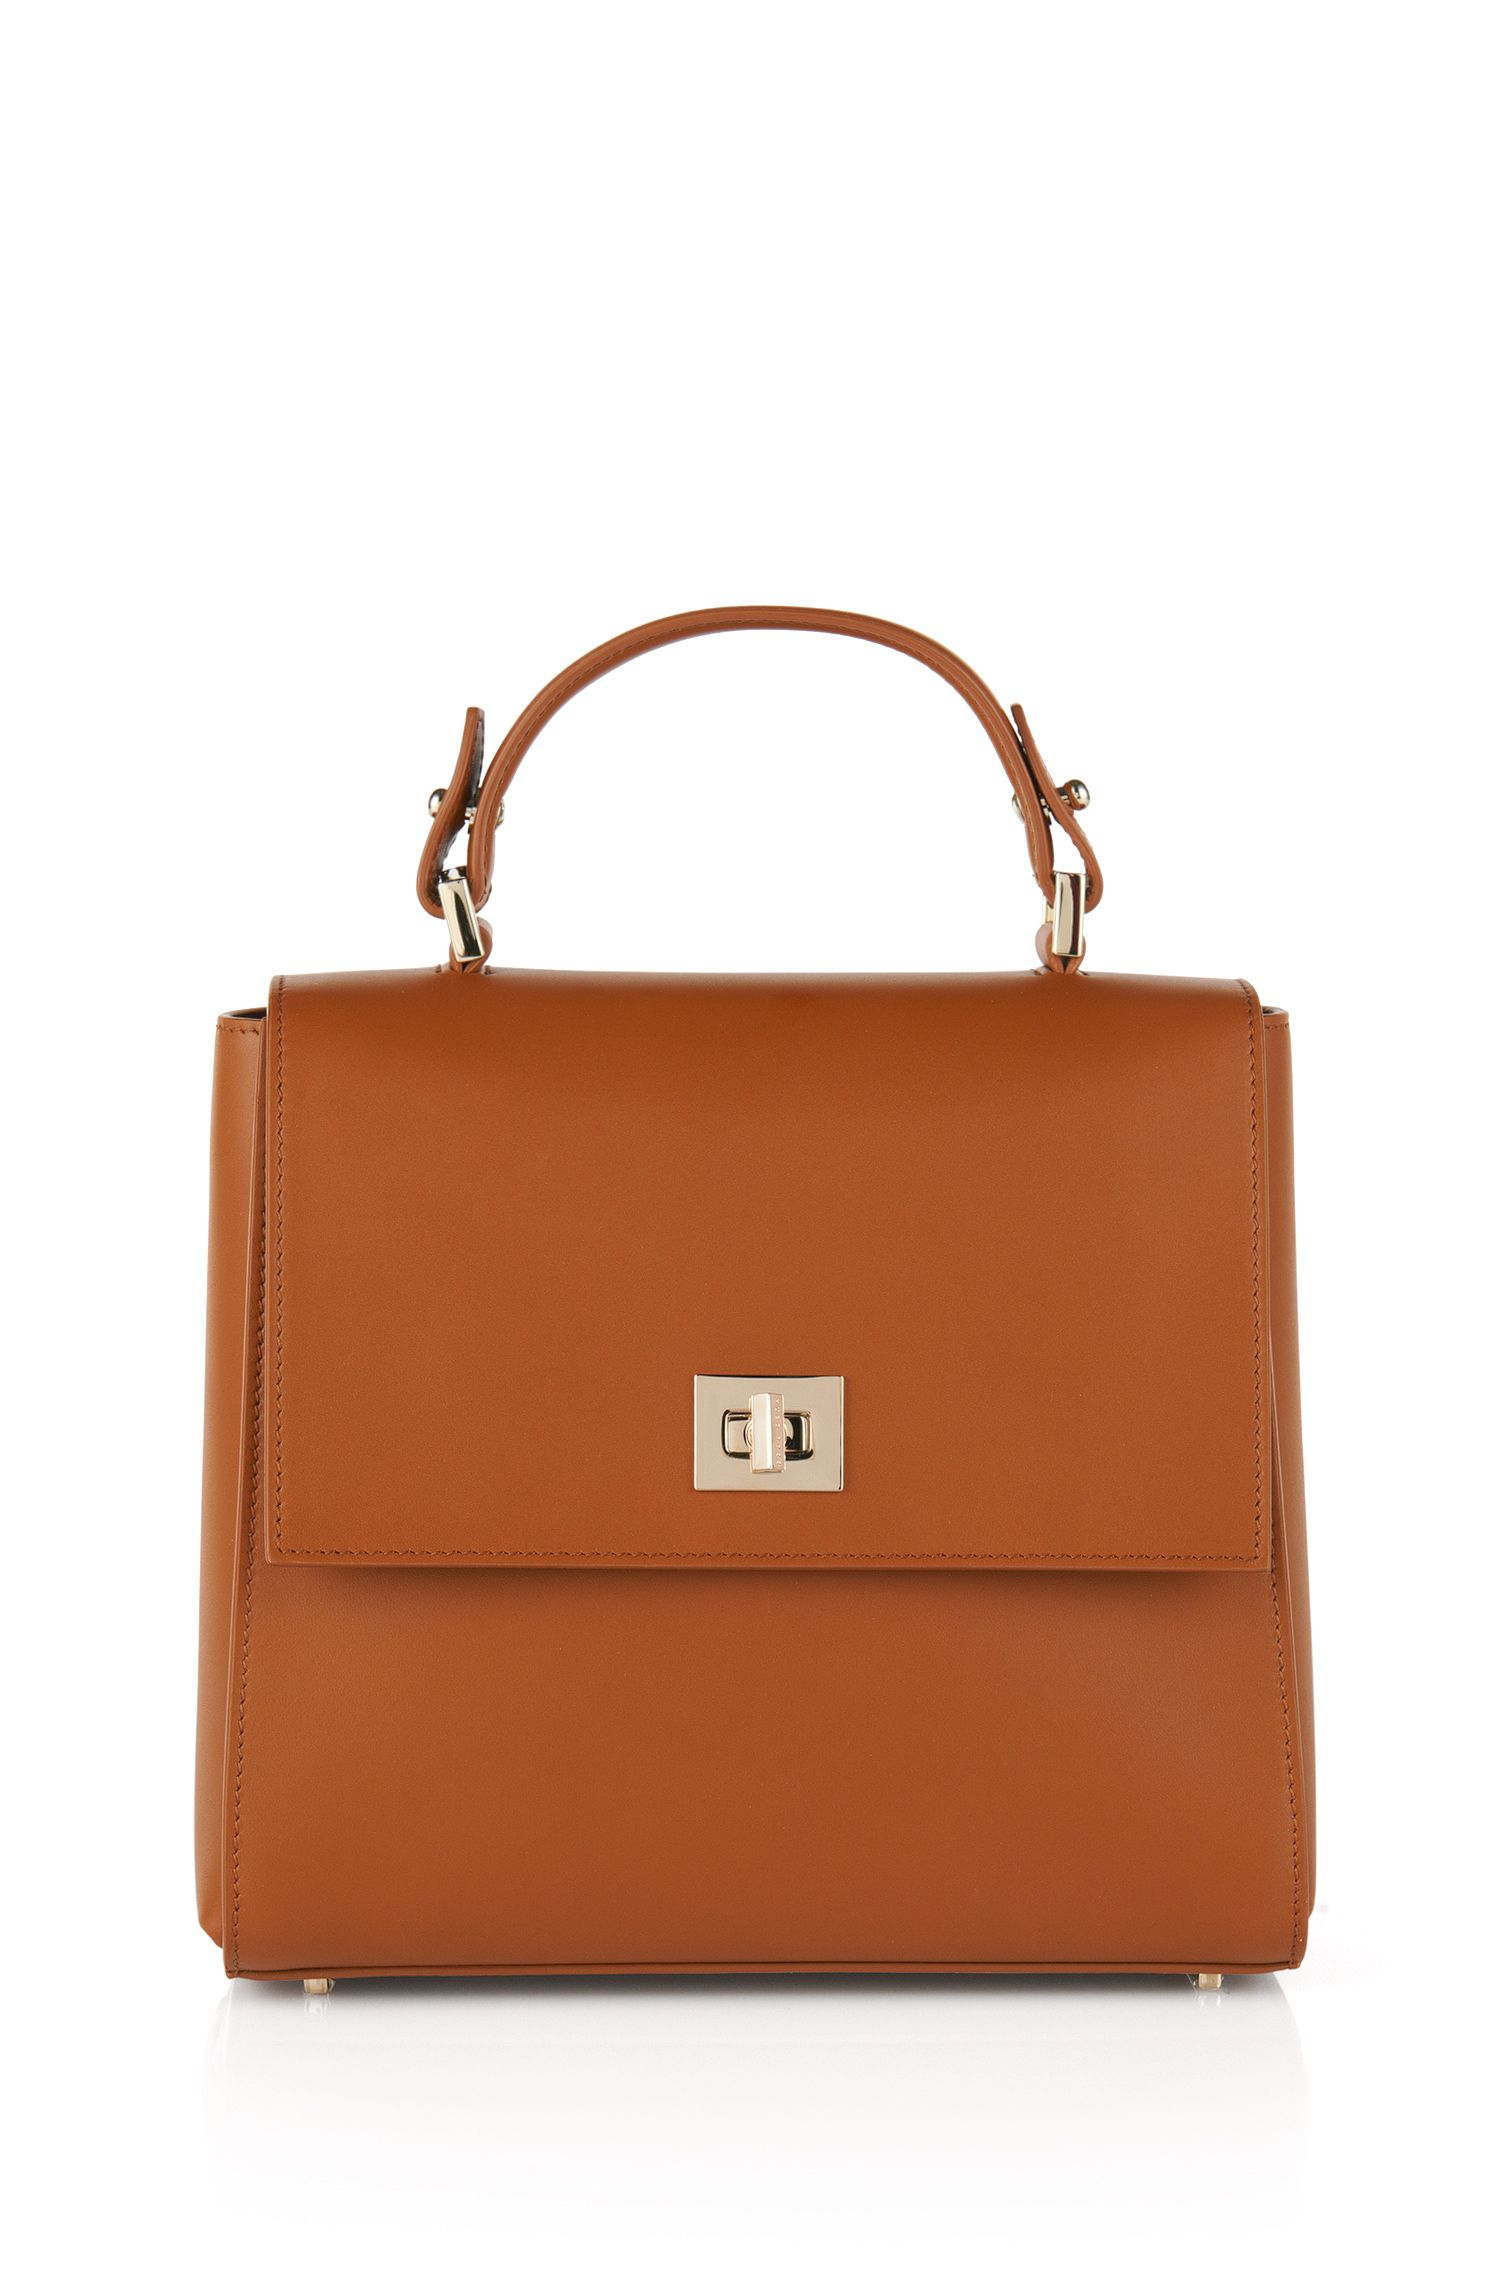 Piccola borsa BOSS Bespoke in pelle, Marrone